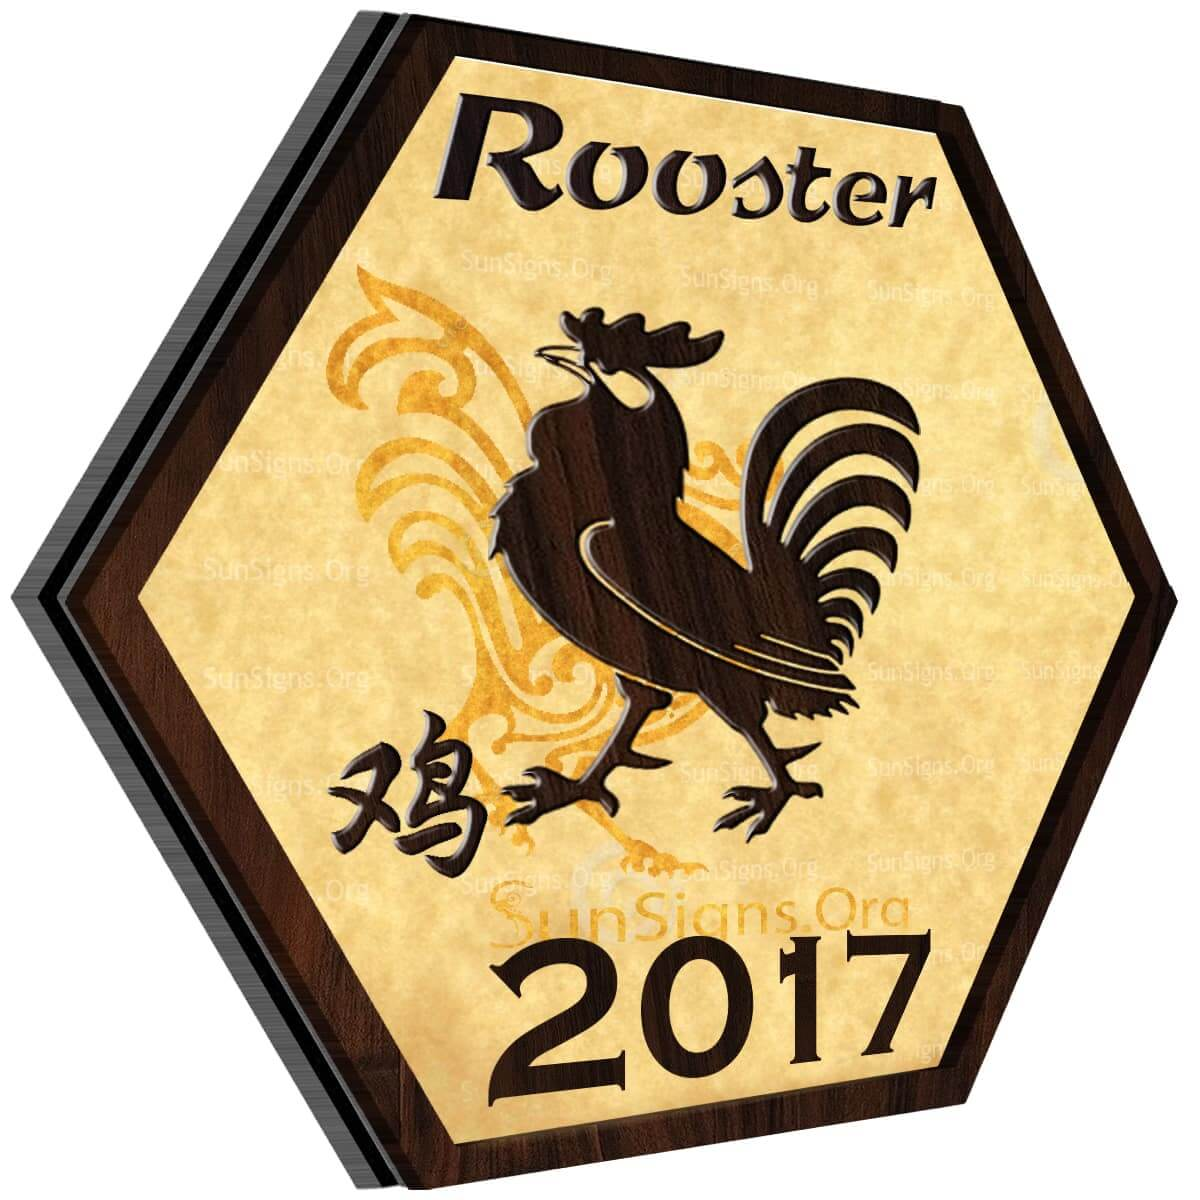 Rooster Horoscope 2017 Predictions For Love, Finance, Career, Health And Family